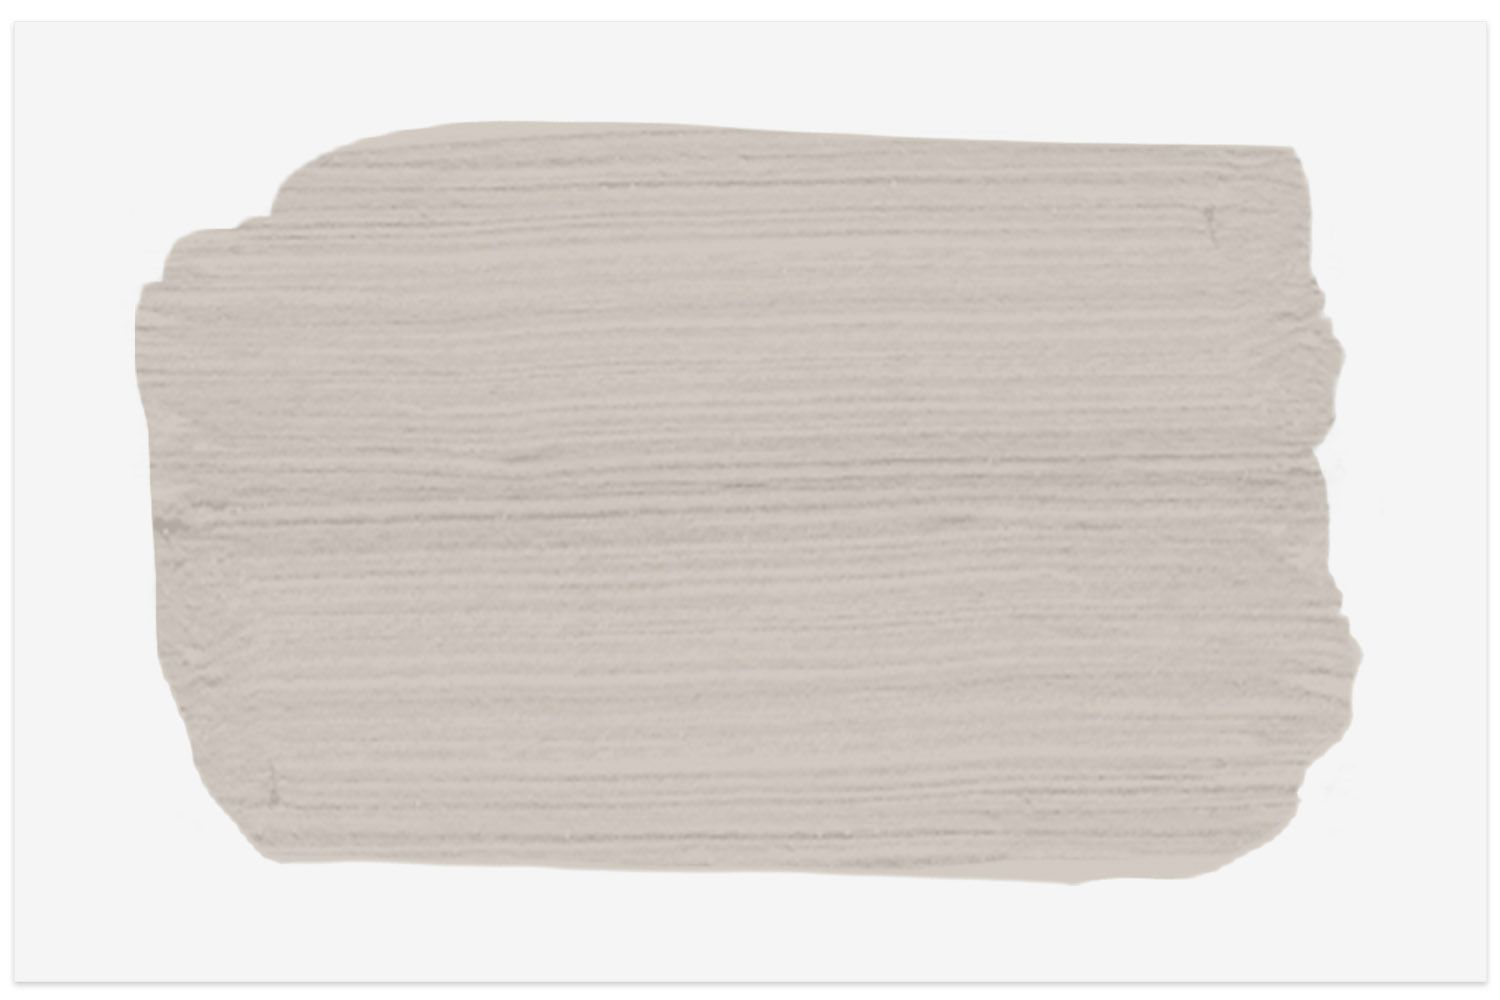 Ashen Tan N220-2 paint swatch from Behr